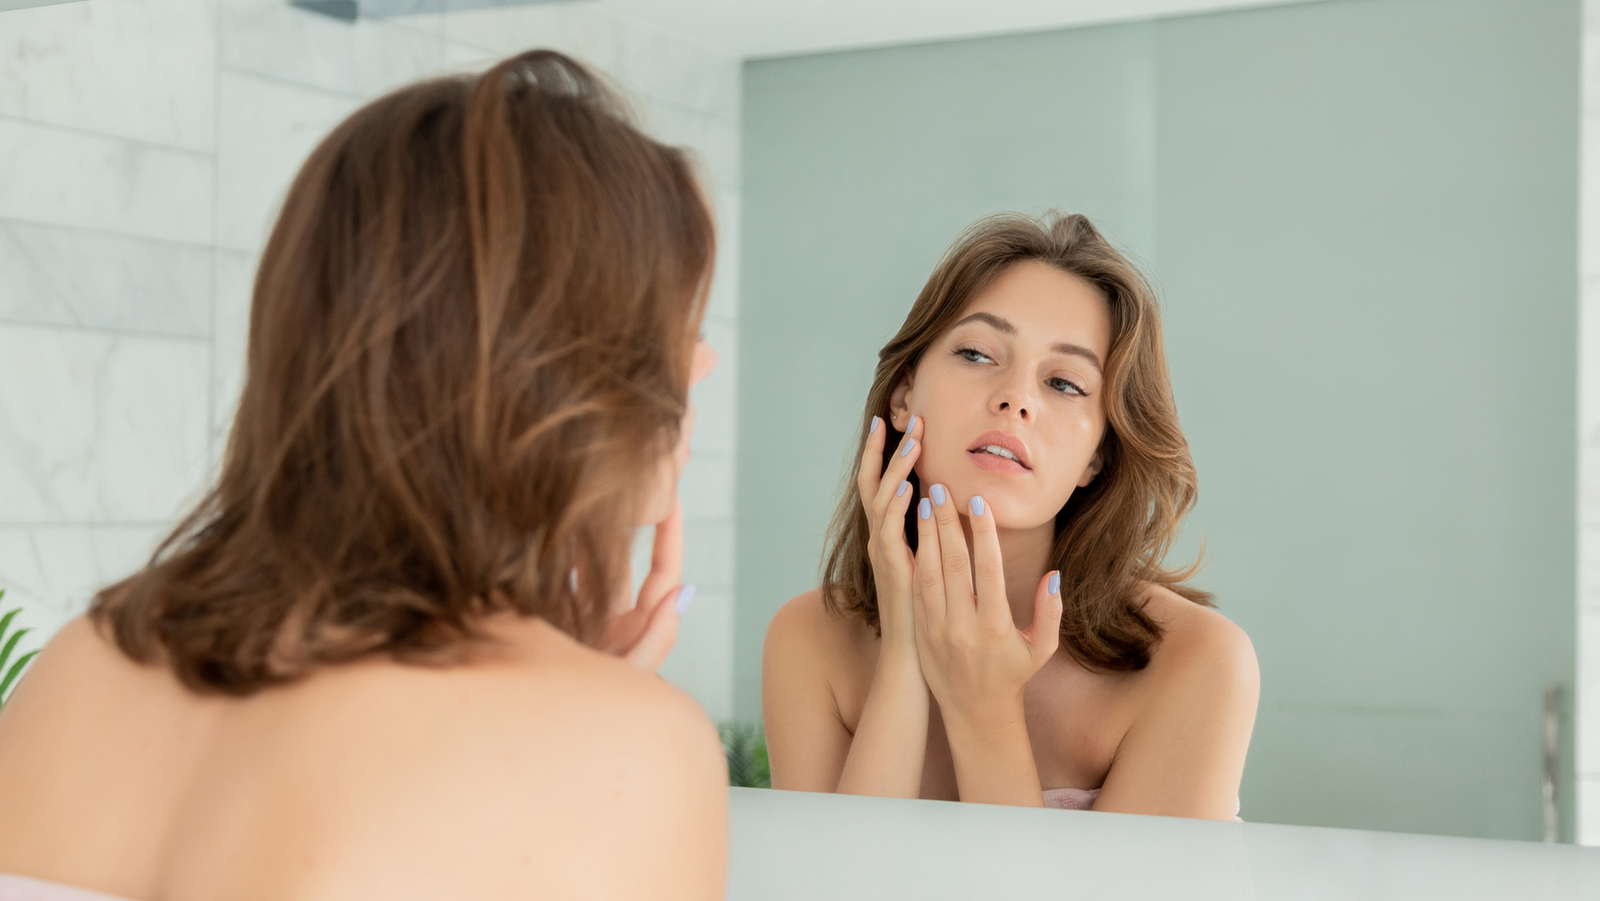 Beauty Morgenroutine Fehler